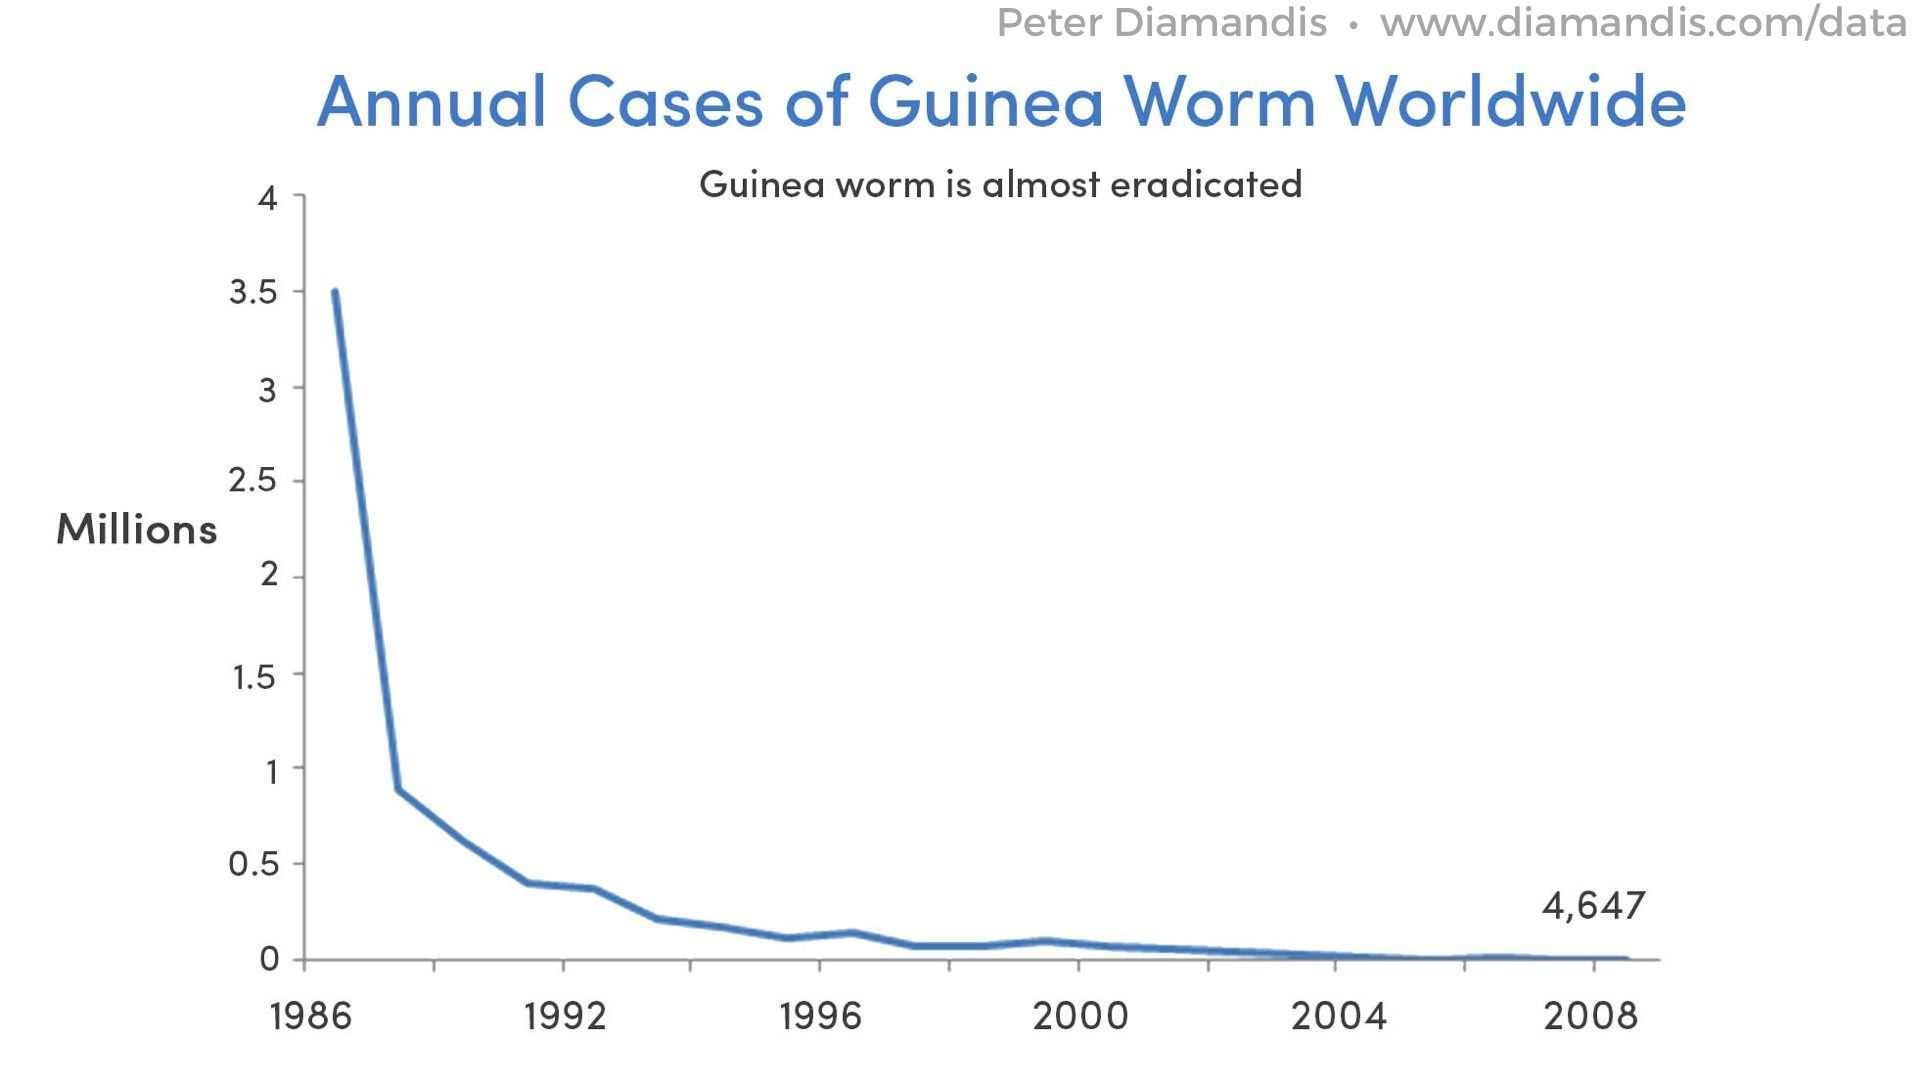 Annual-Cases-of-Guinea-Worm-Worldwide-compressor